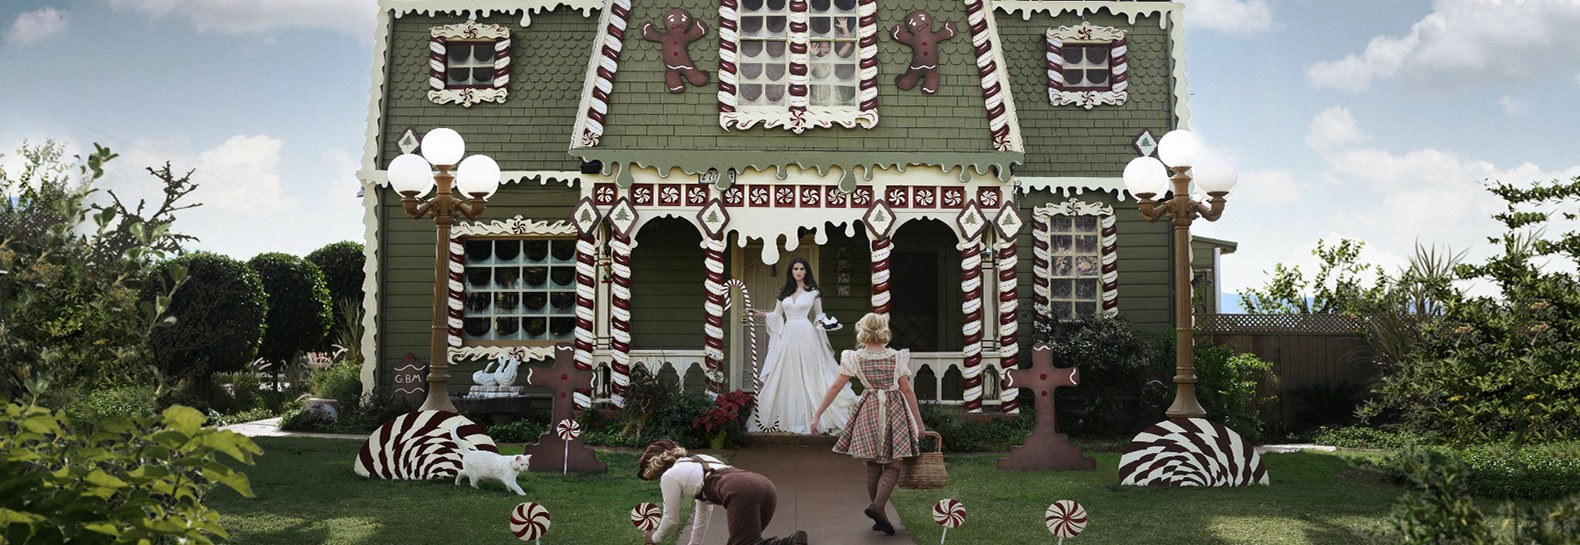 Fullsize Of Hansel And Gretel House